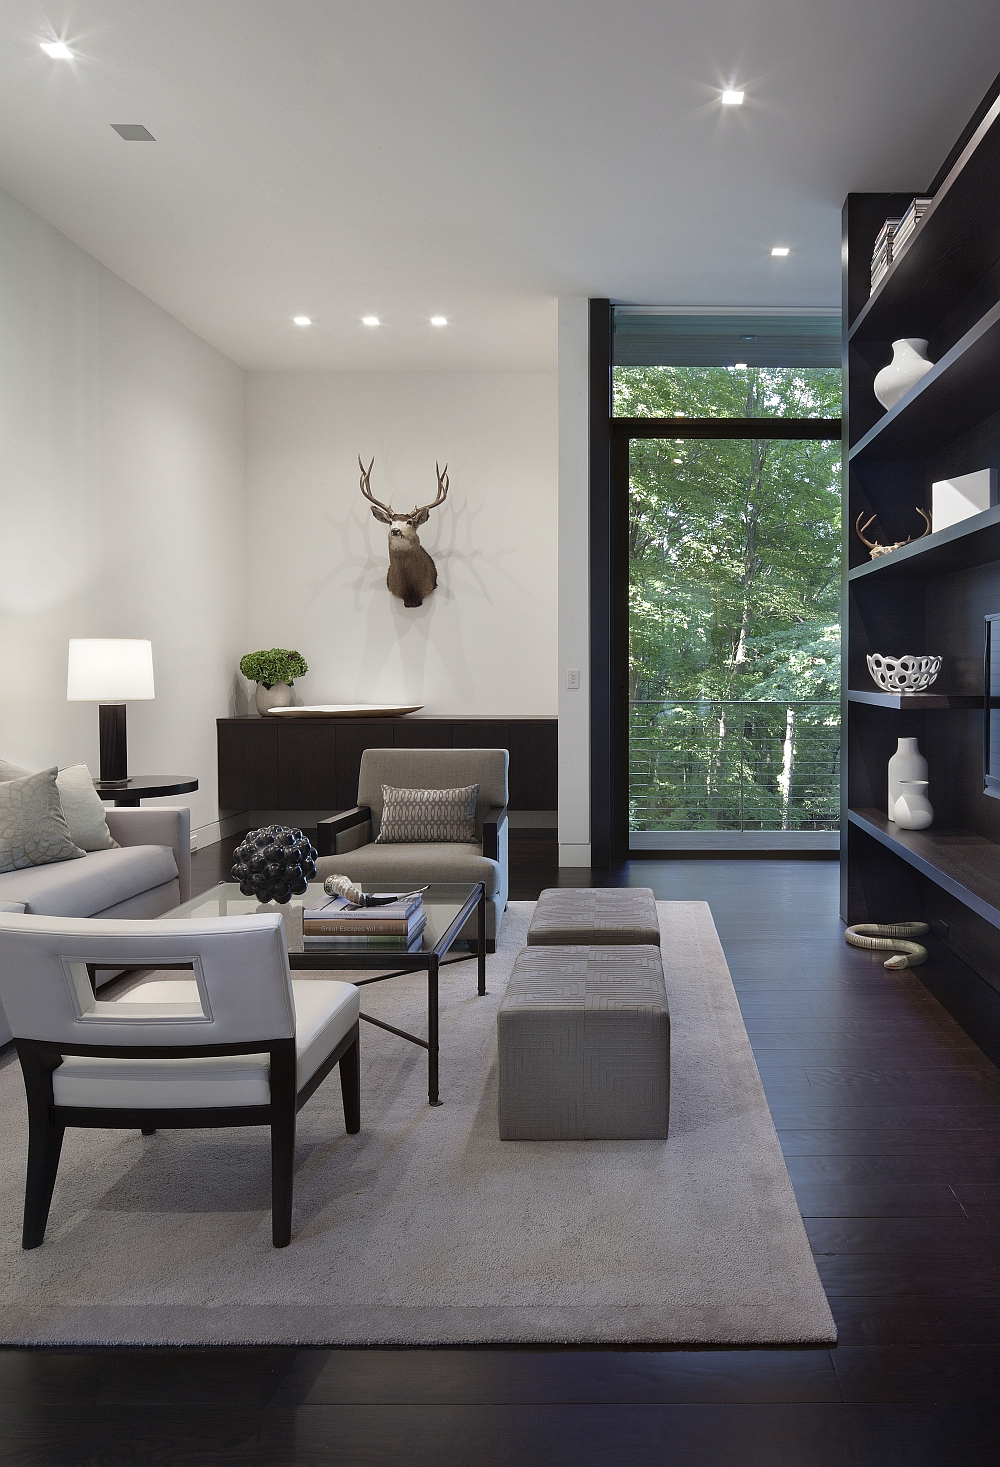 Family area with cube ottomans and open shelves